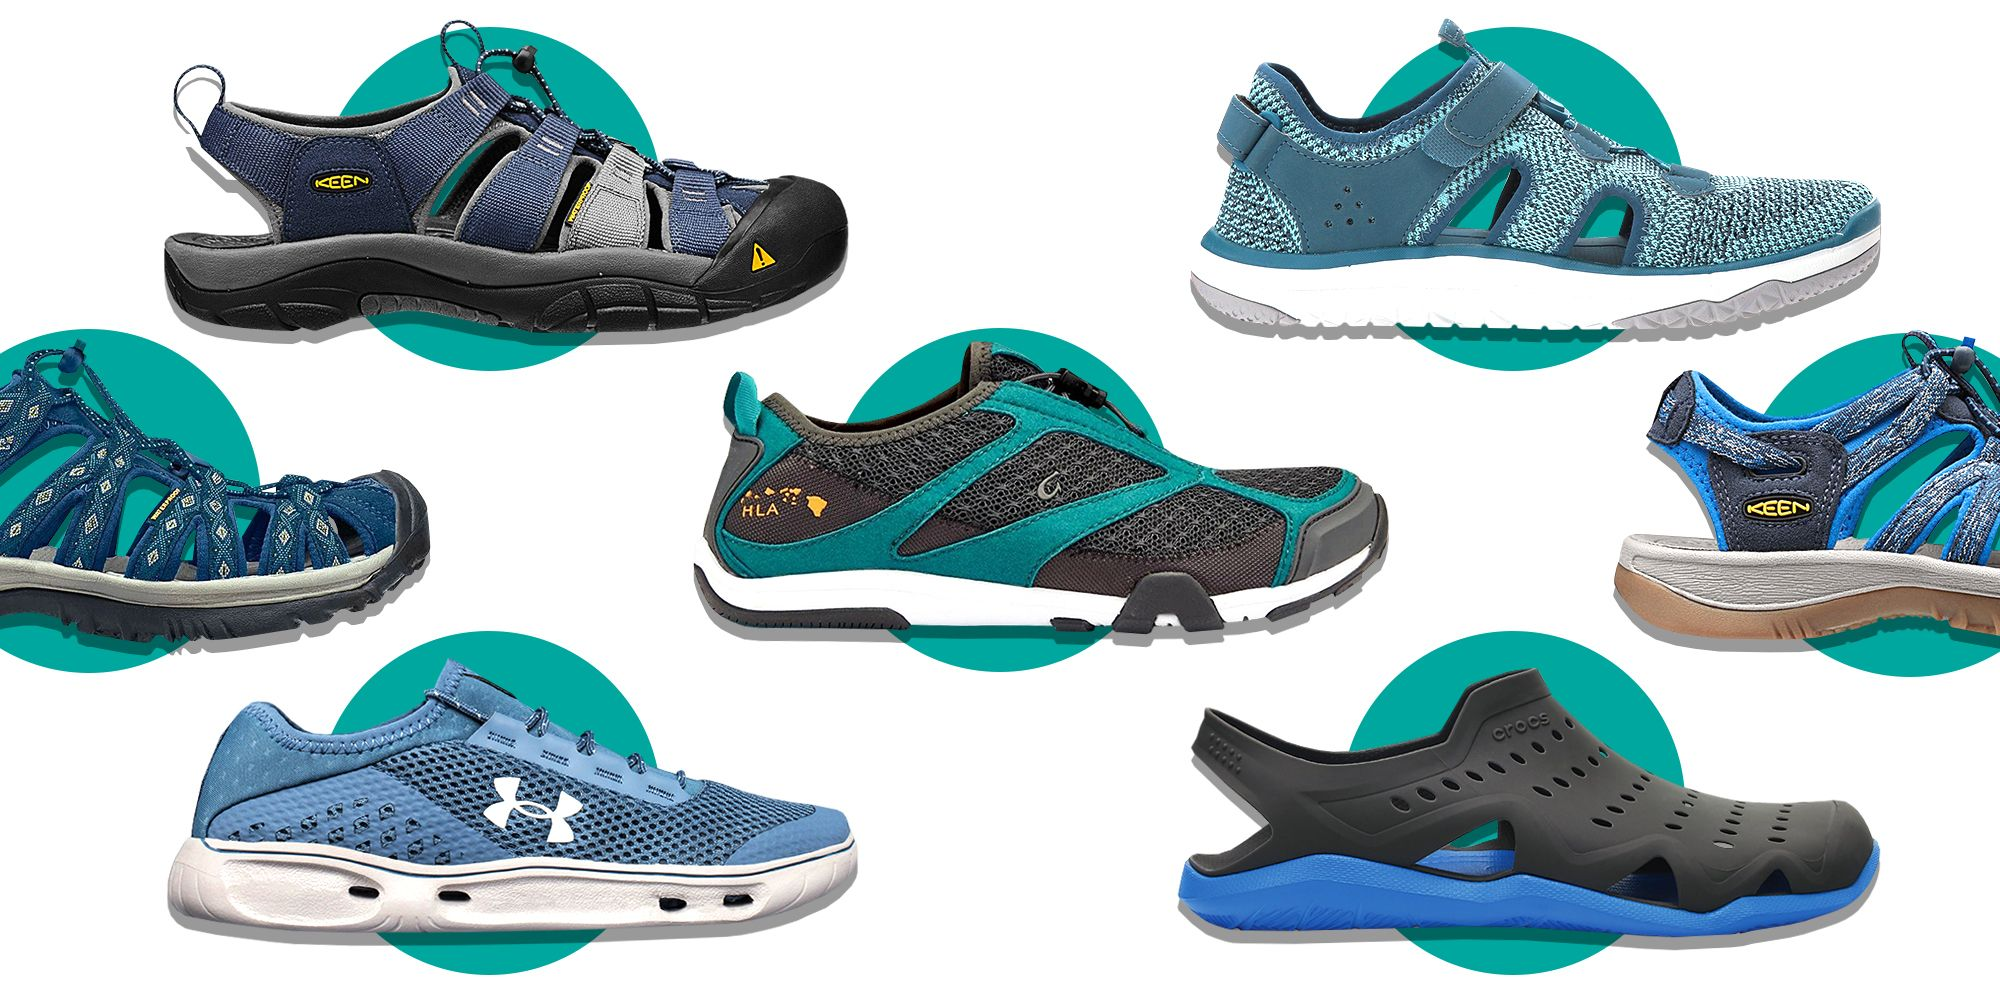 9 Best Water Shoes for 2018 - Waterproof Swimming Shoes for Men and ...